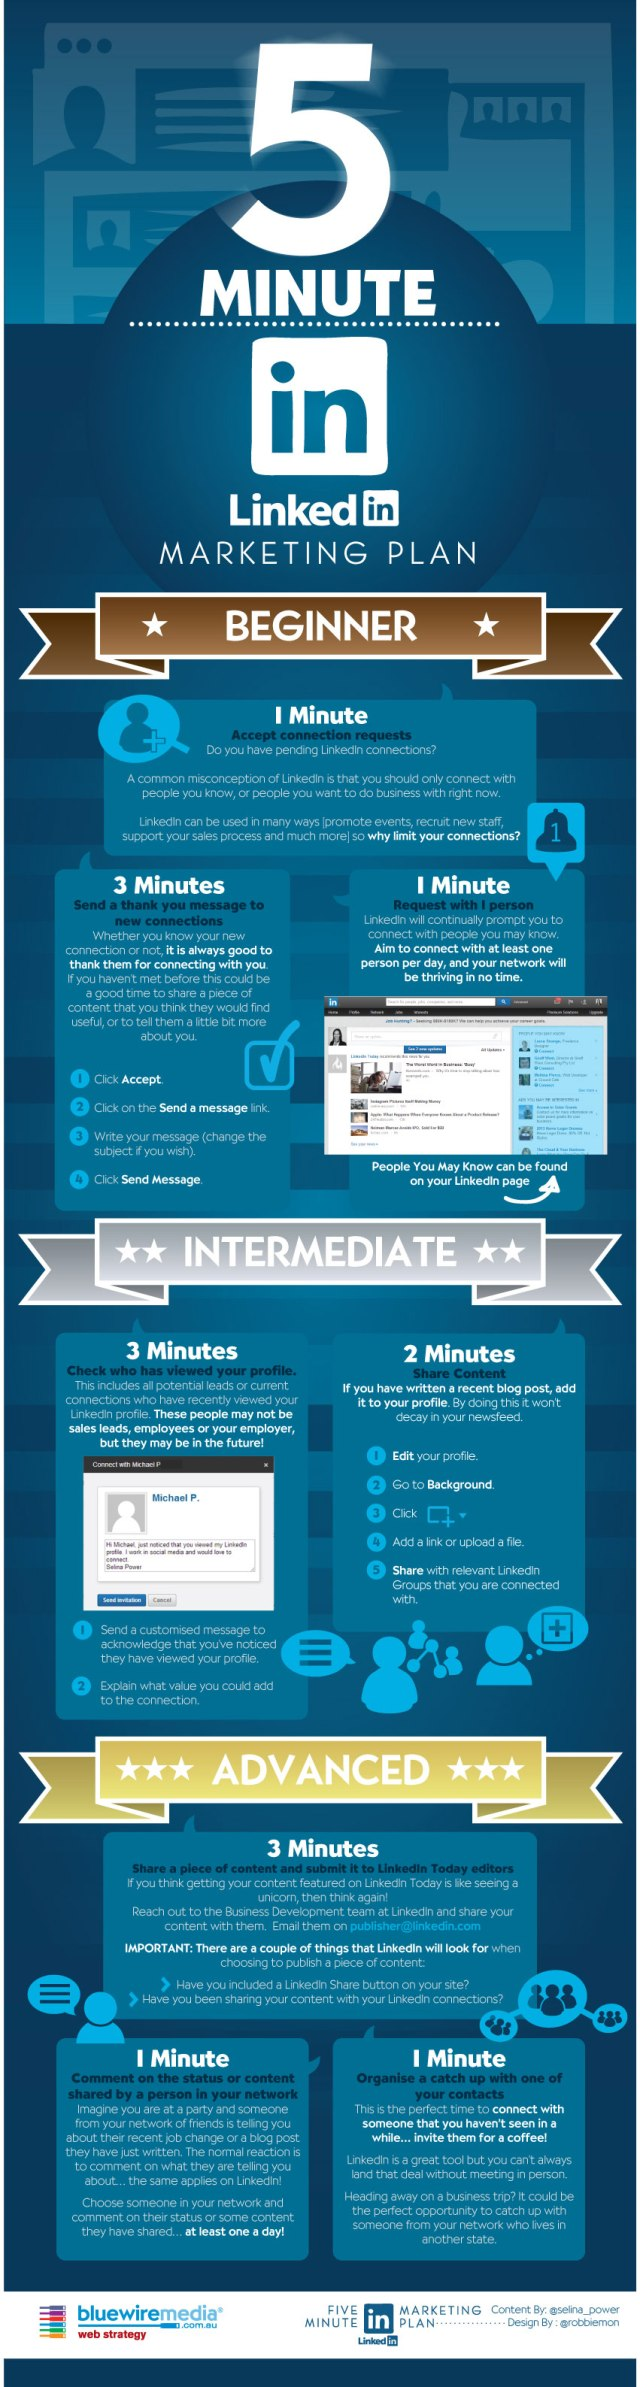 Plan de marketing en Linkedin en 5 minutos